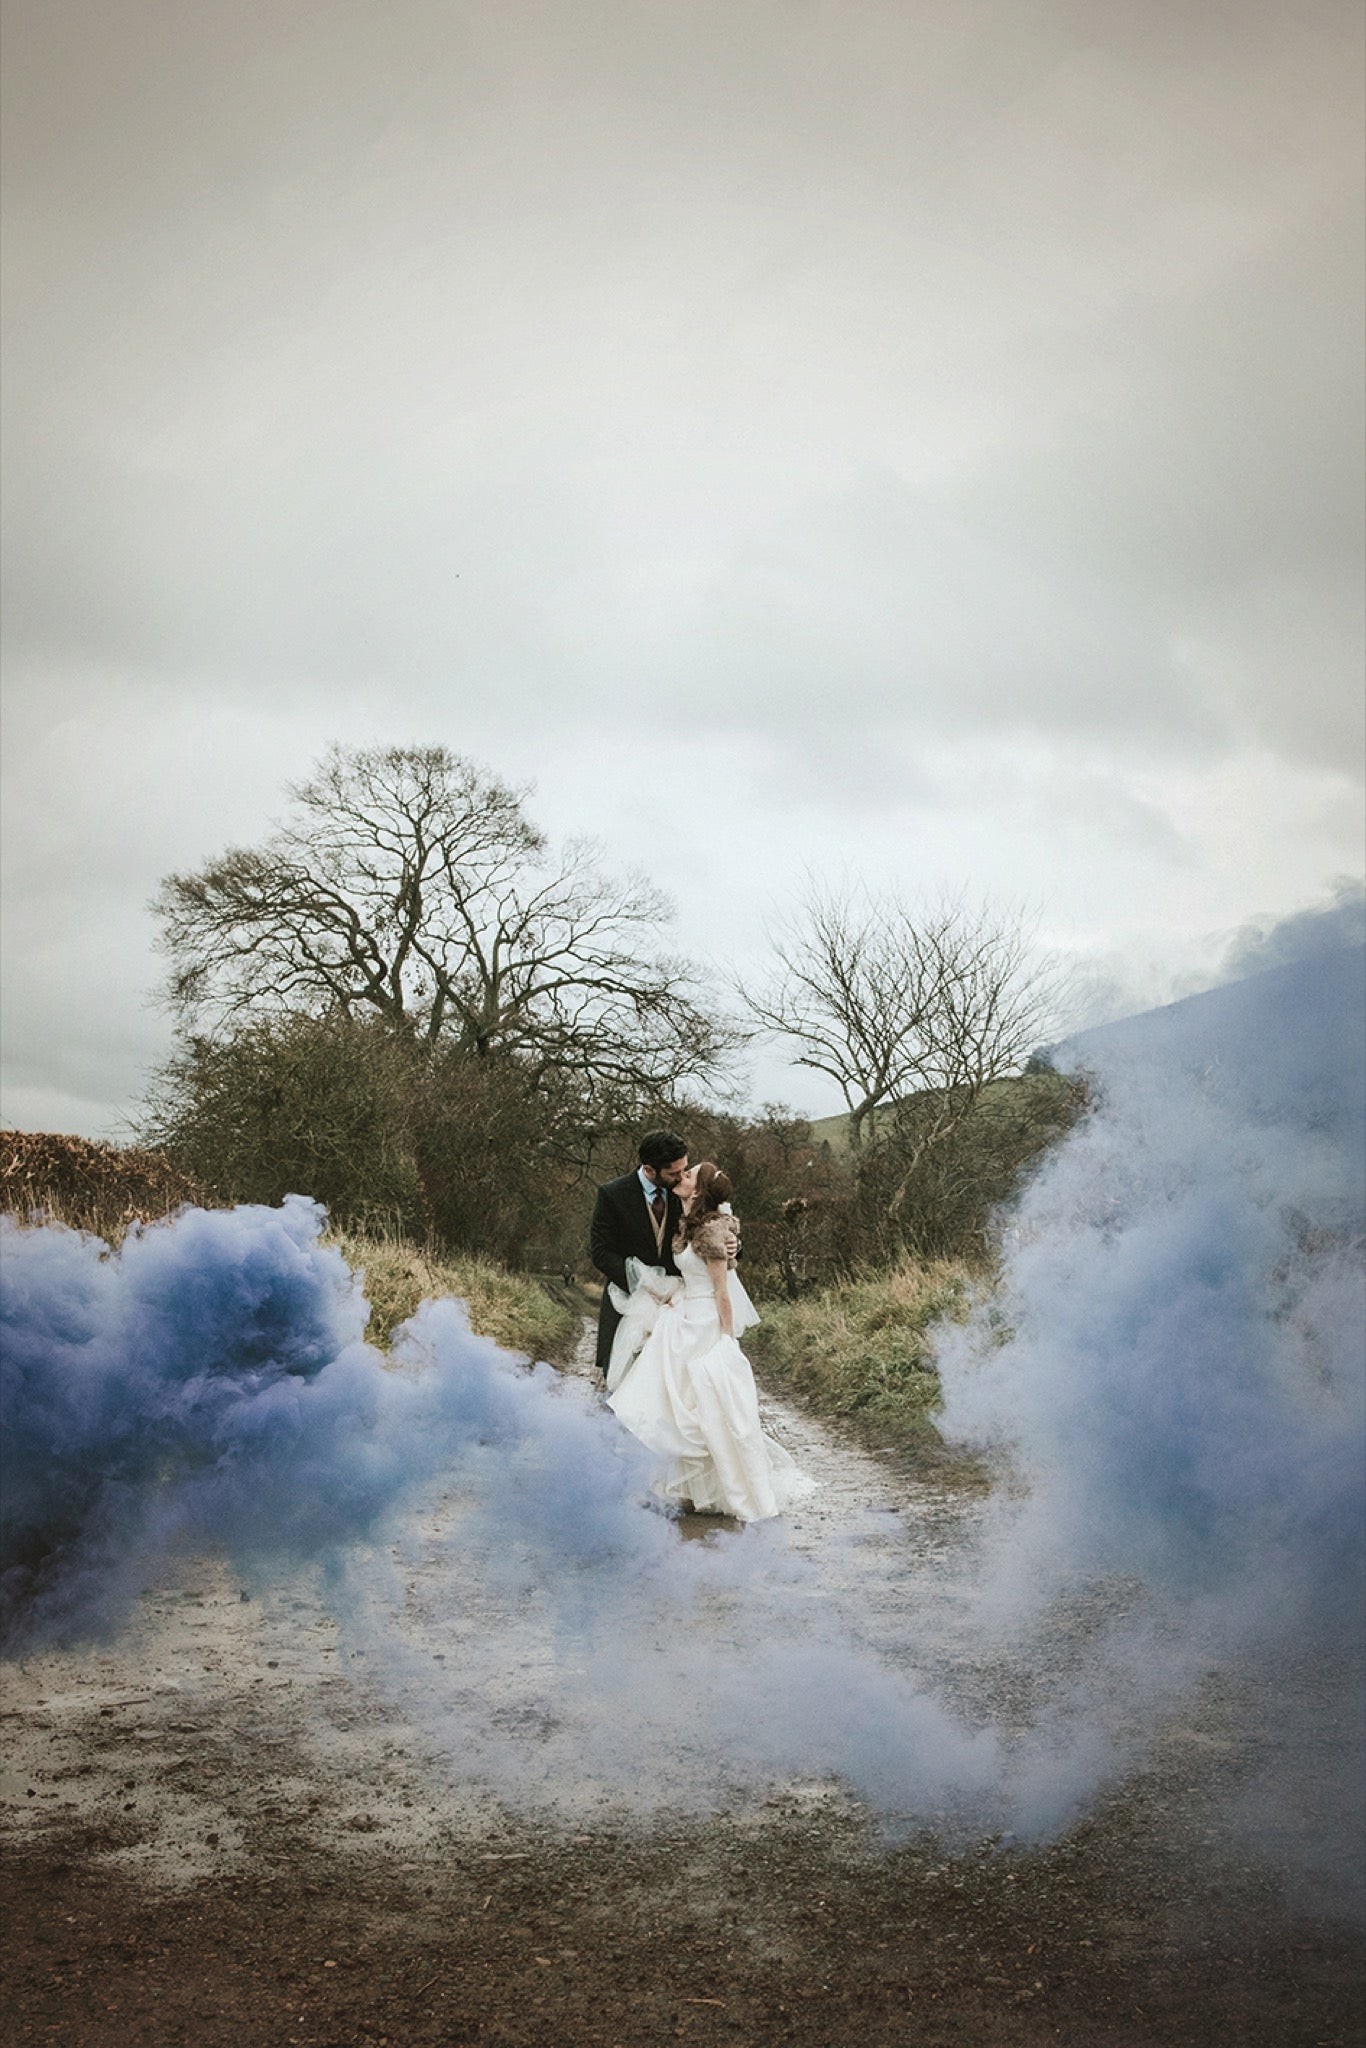 Wedding photo with blue smoke